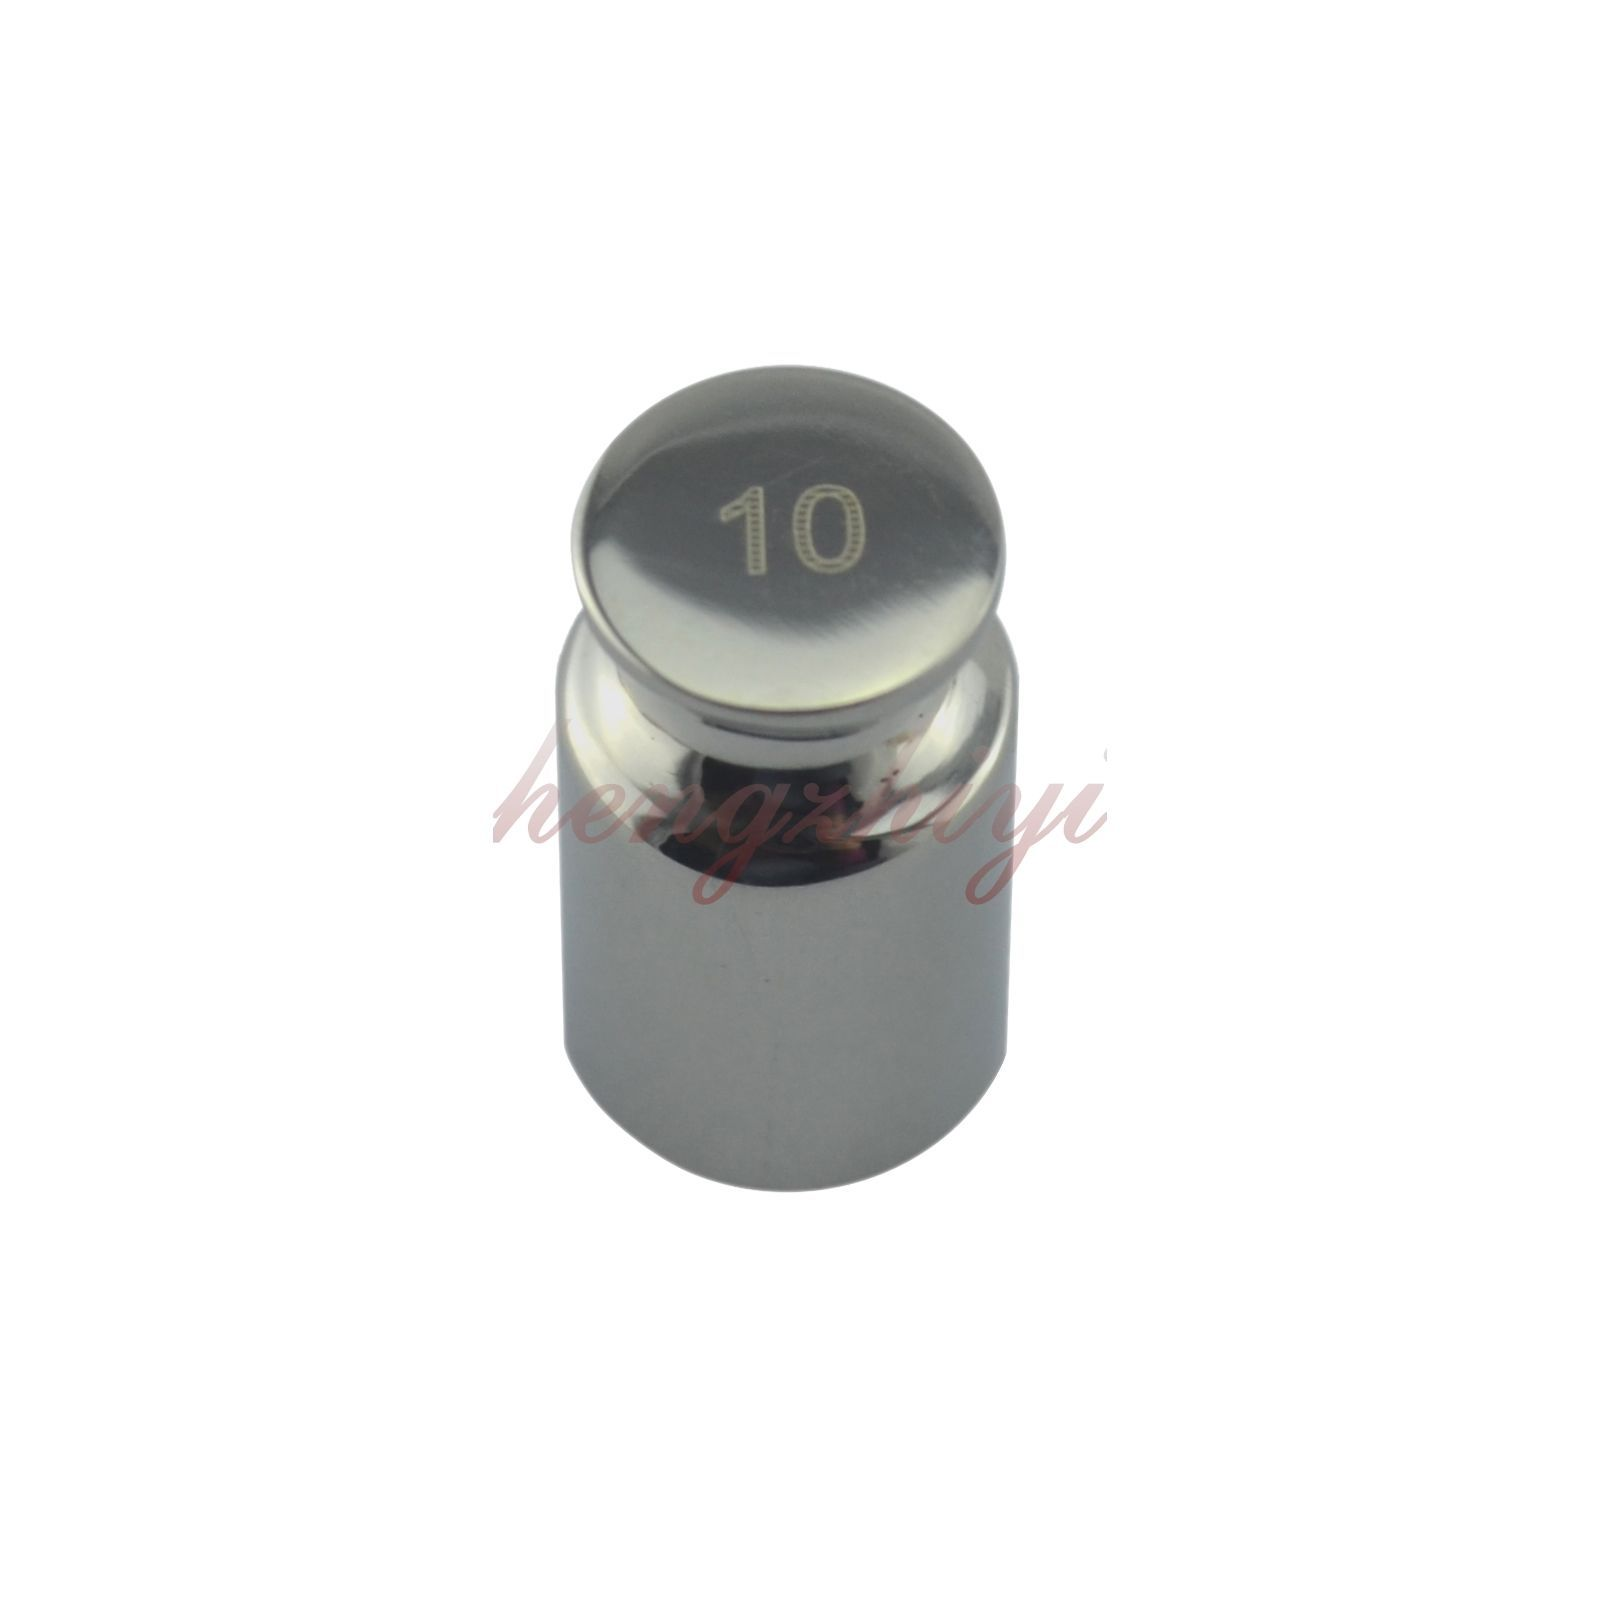 F1 Grade 10G 304 Stainless Steel Calibration Weight for Precision Scale Balance